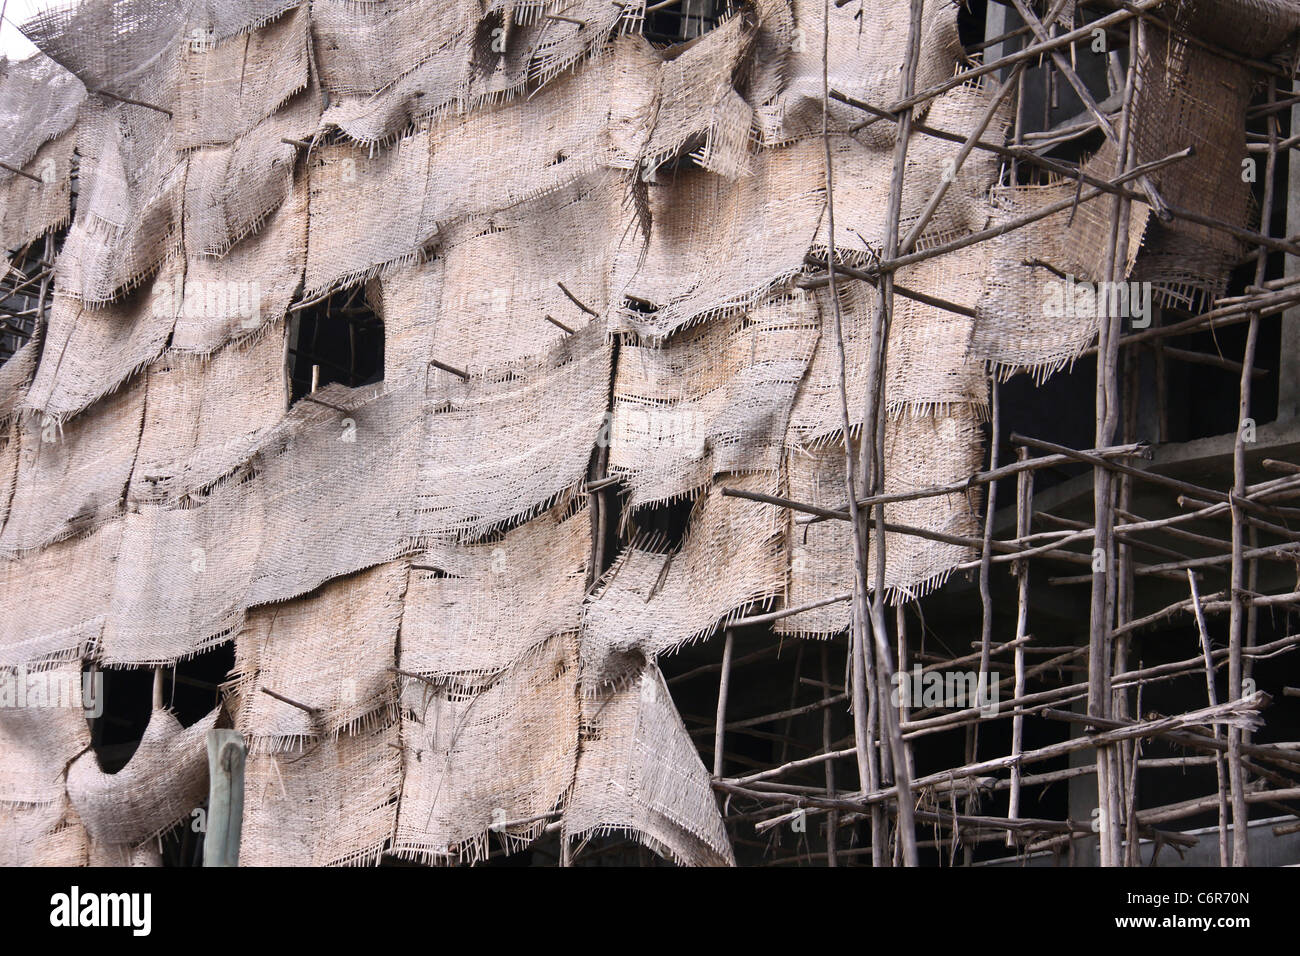 Construction scaffolding and screens on a multi-storey building in downtown Awassa - Stock Image